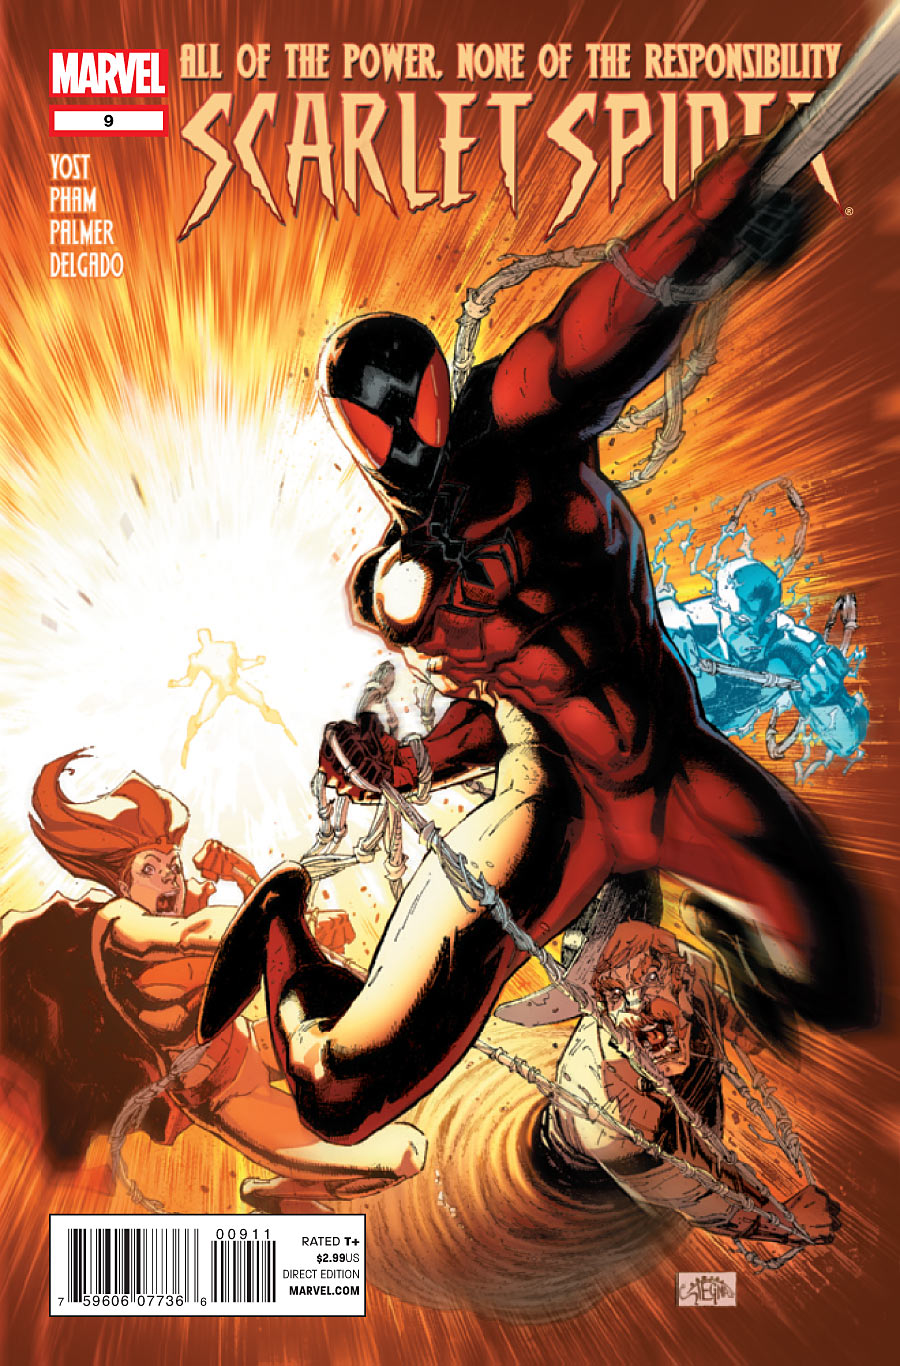 Scarlet Spider number 9